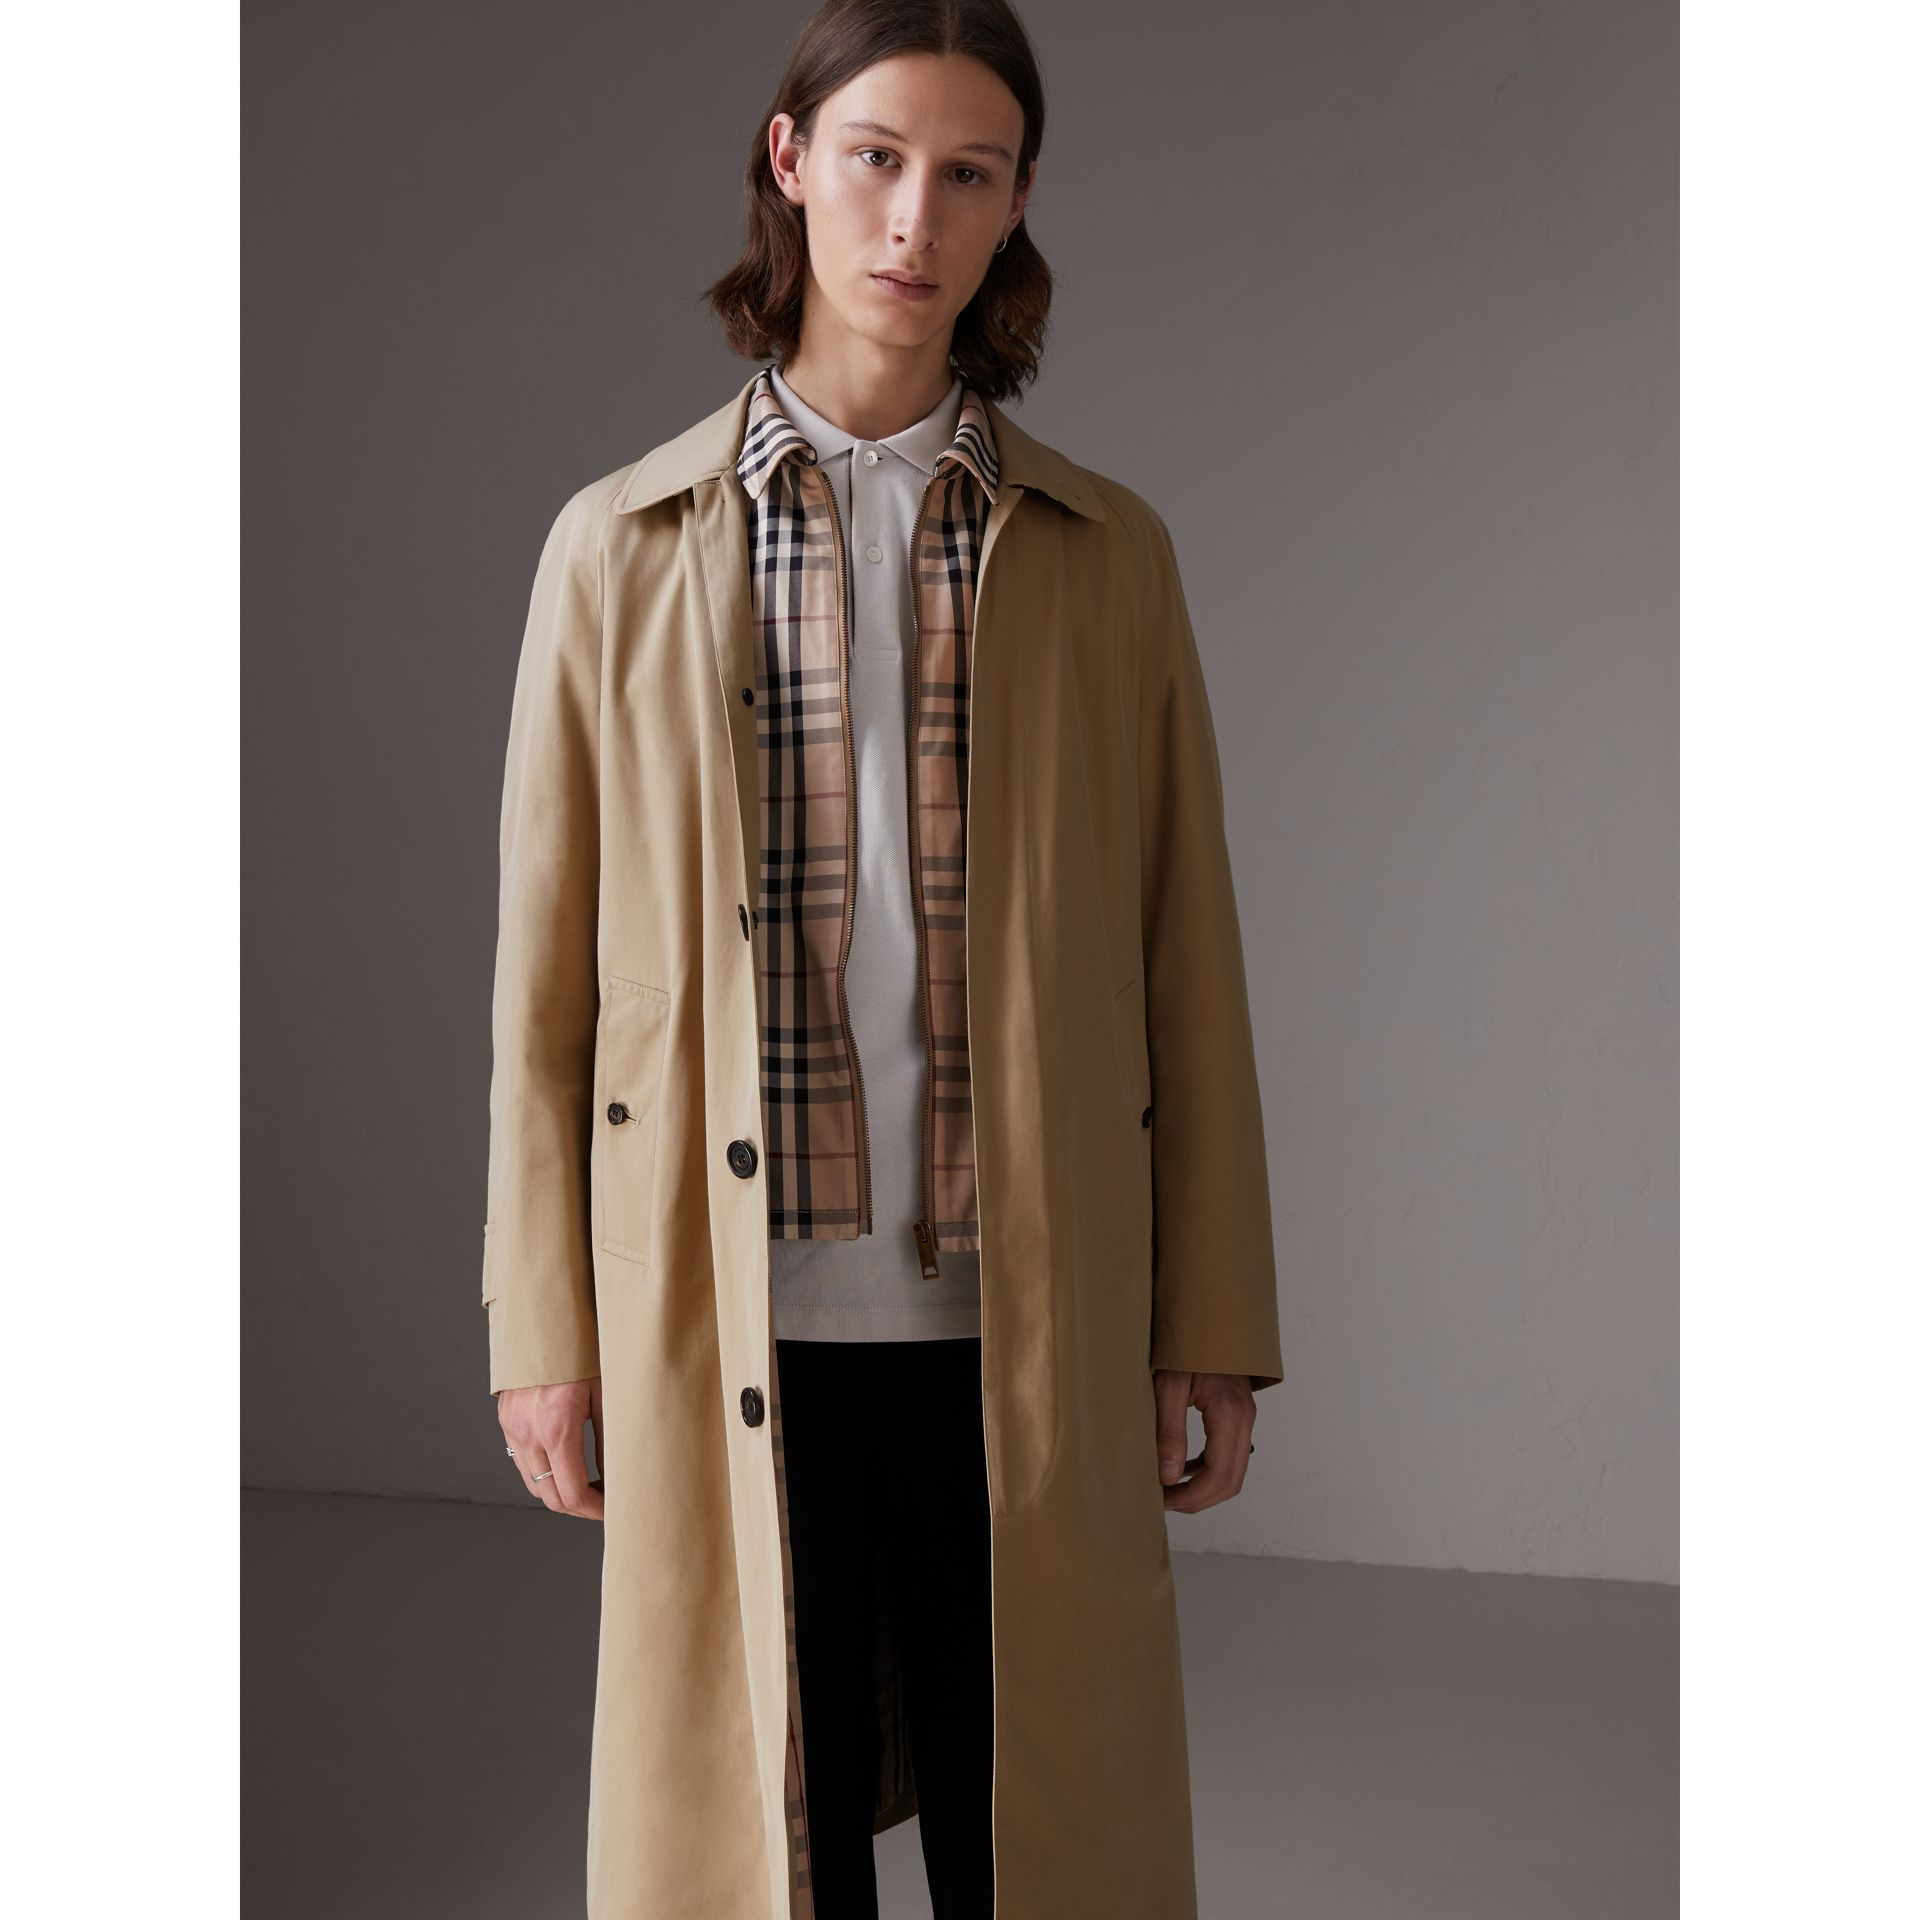 Gosha x Burberry Reconstructed Car Coat in Honey | Burberry Hong Kong - gallery image 2